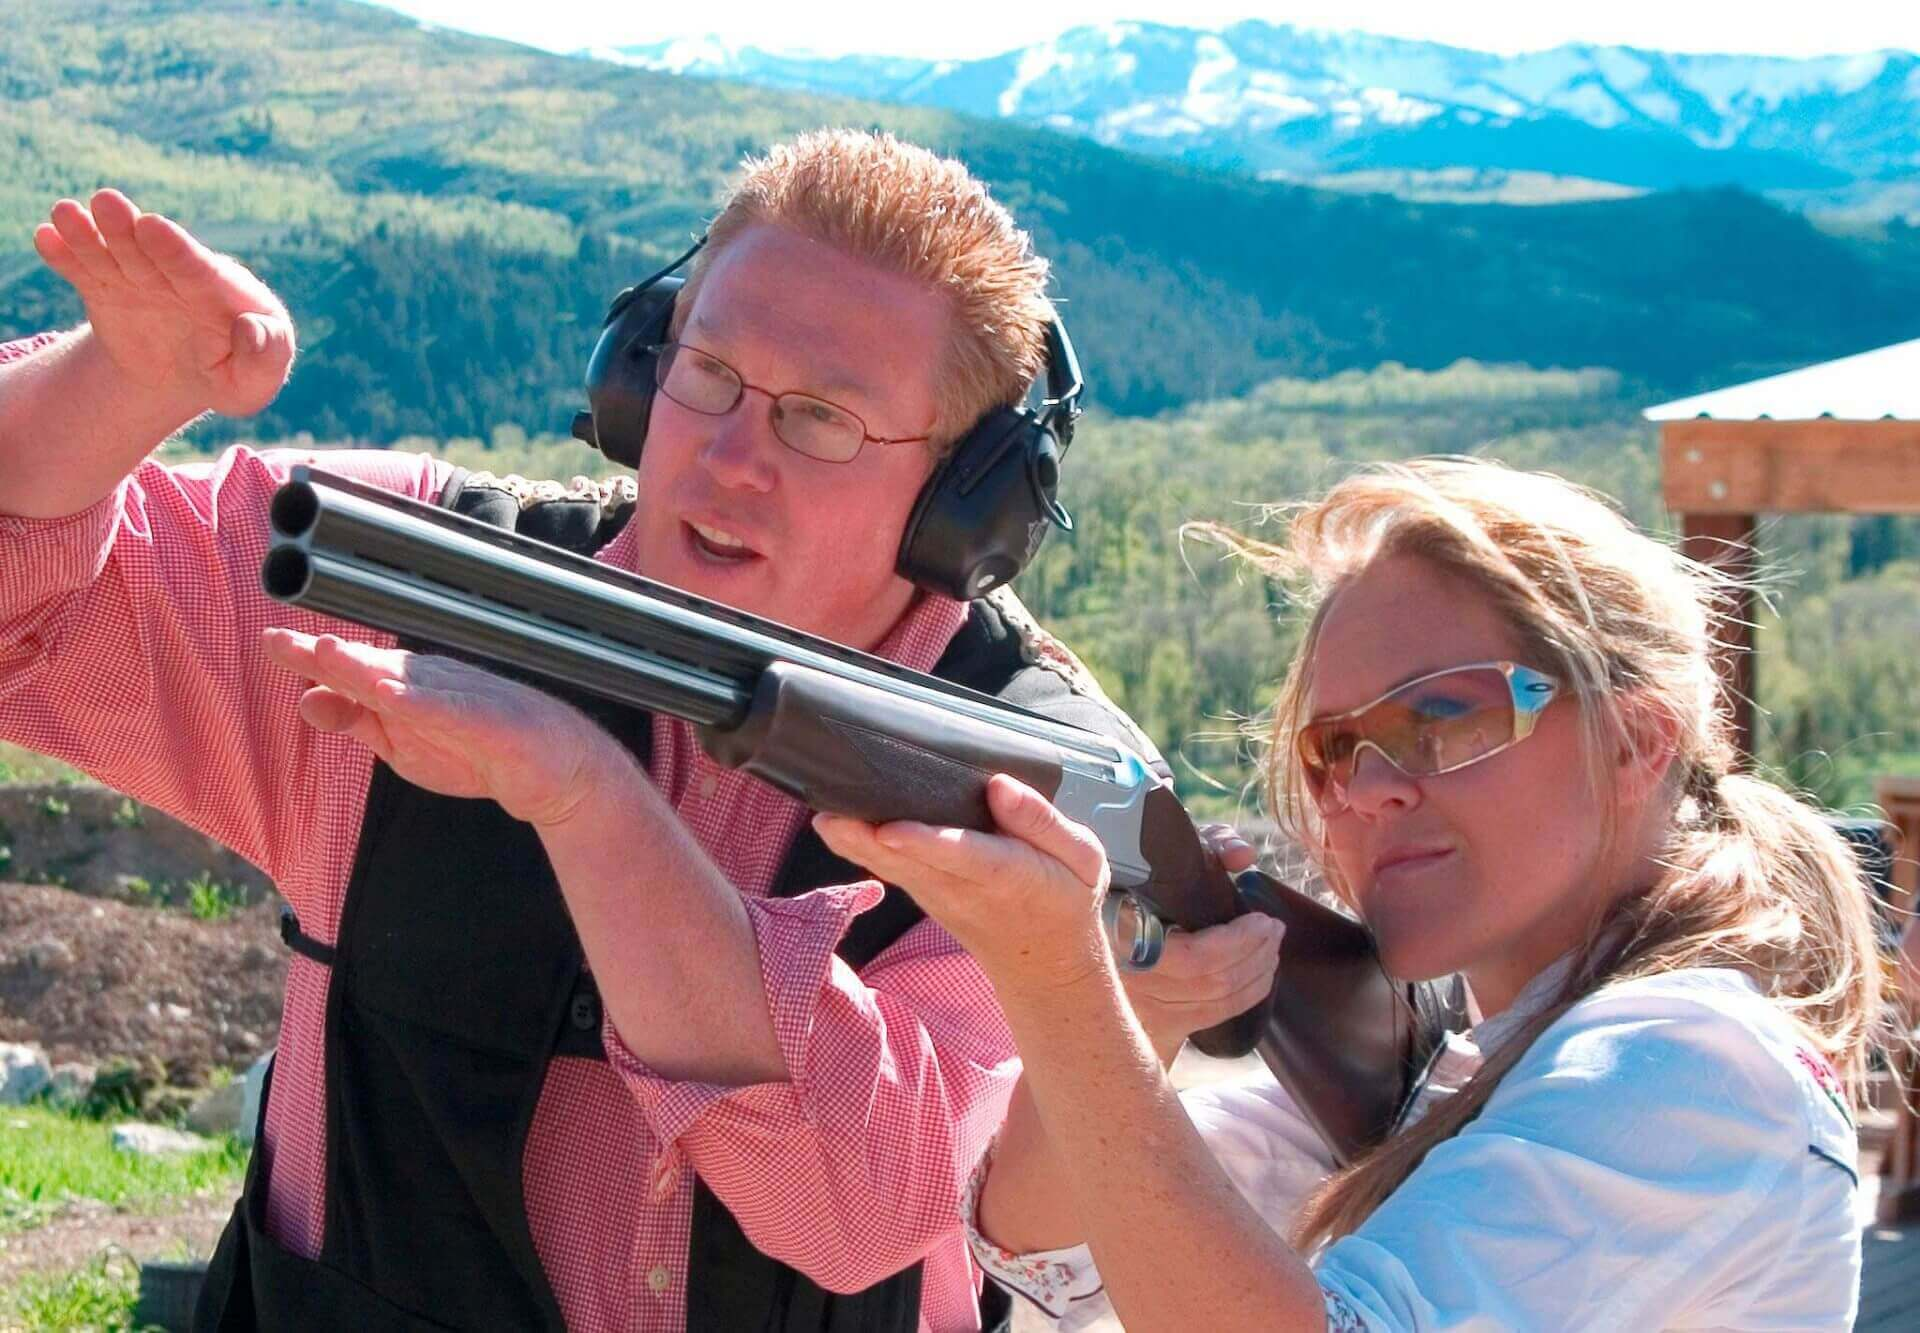 male instructor teaching a woman how to shoot a rifle